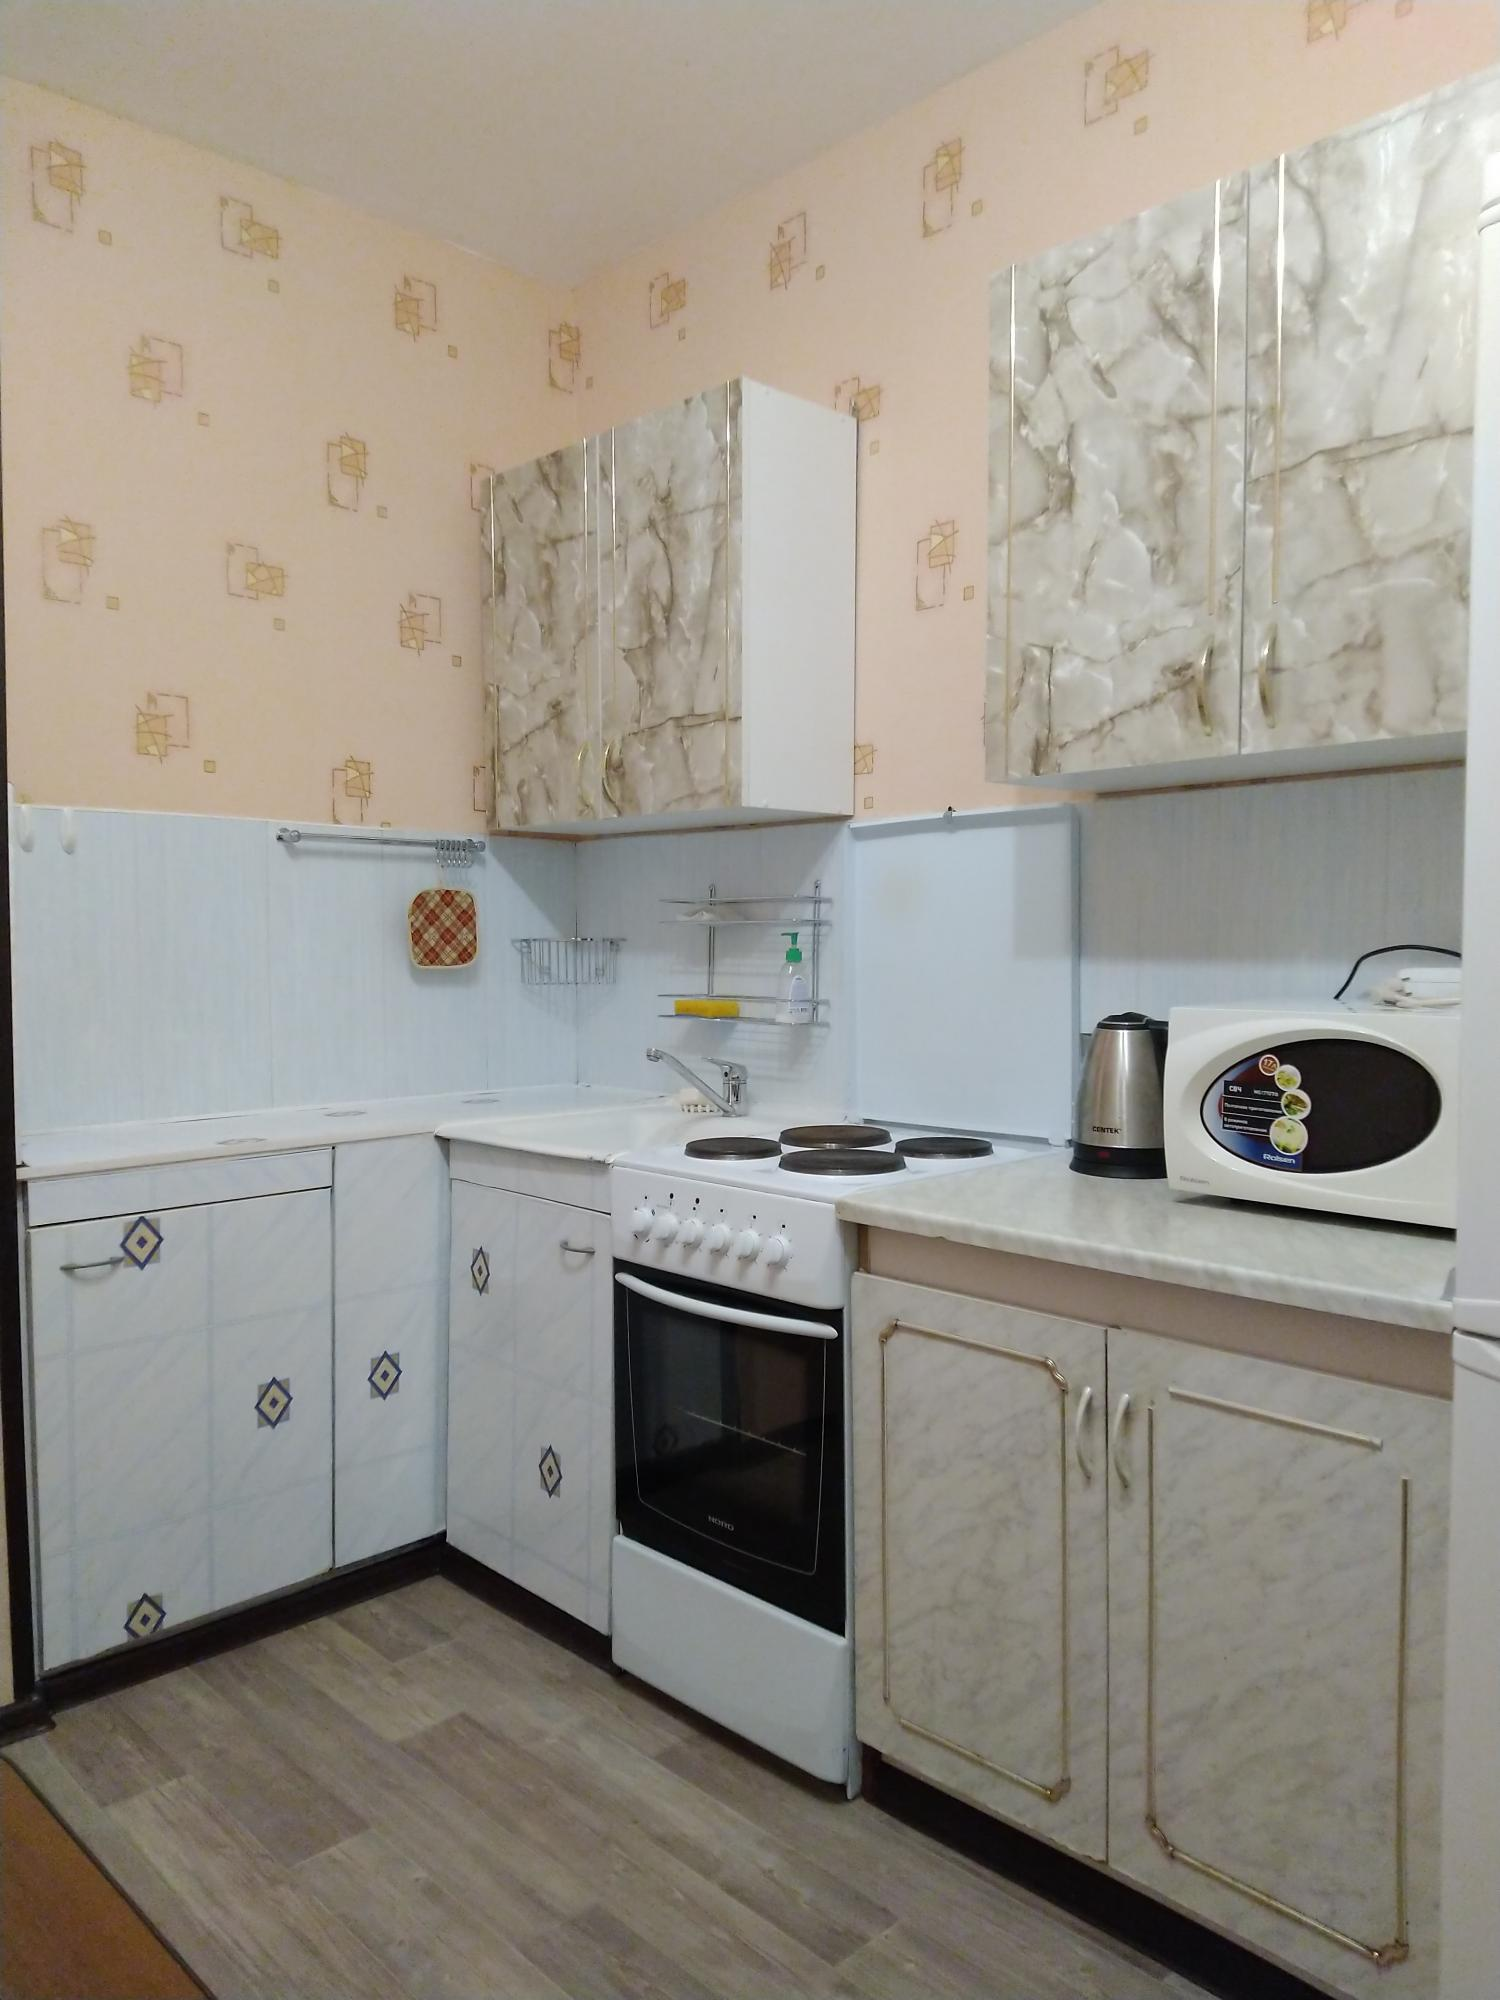 Apartment, 1 room, 41 m2 in Moscow 89629338809 buy 4